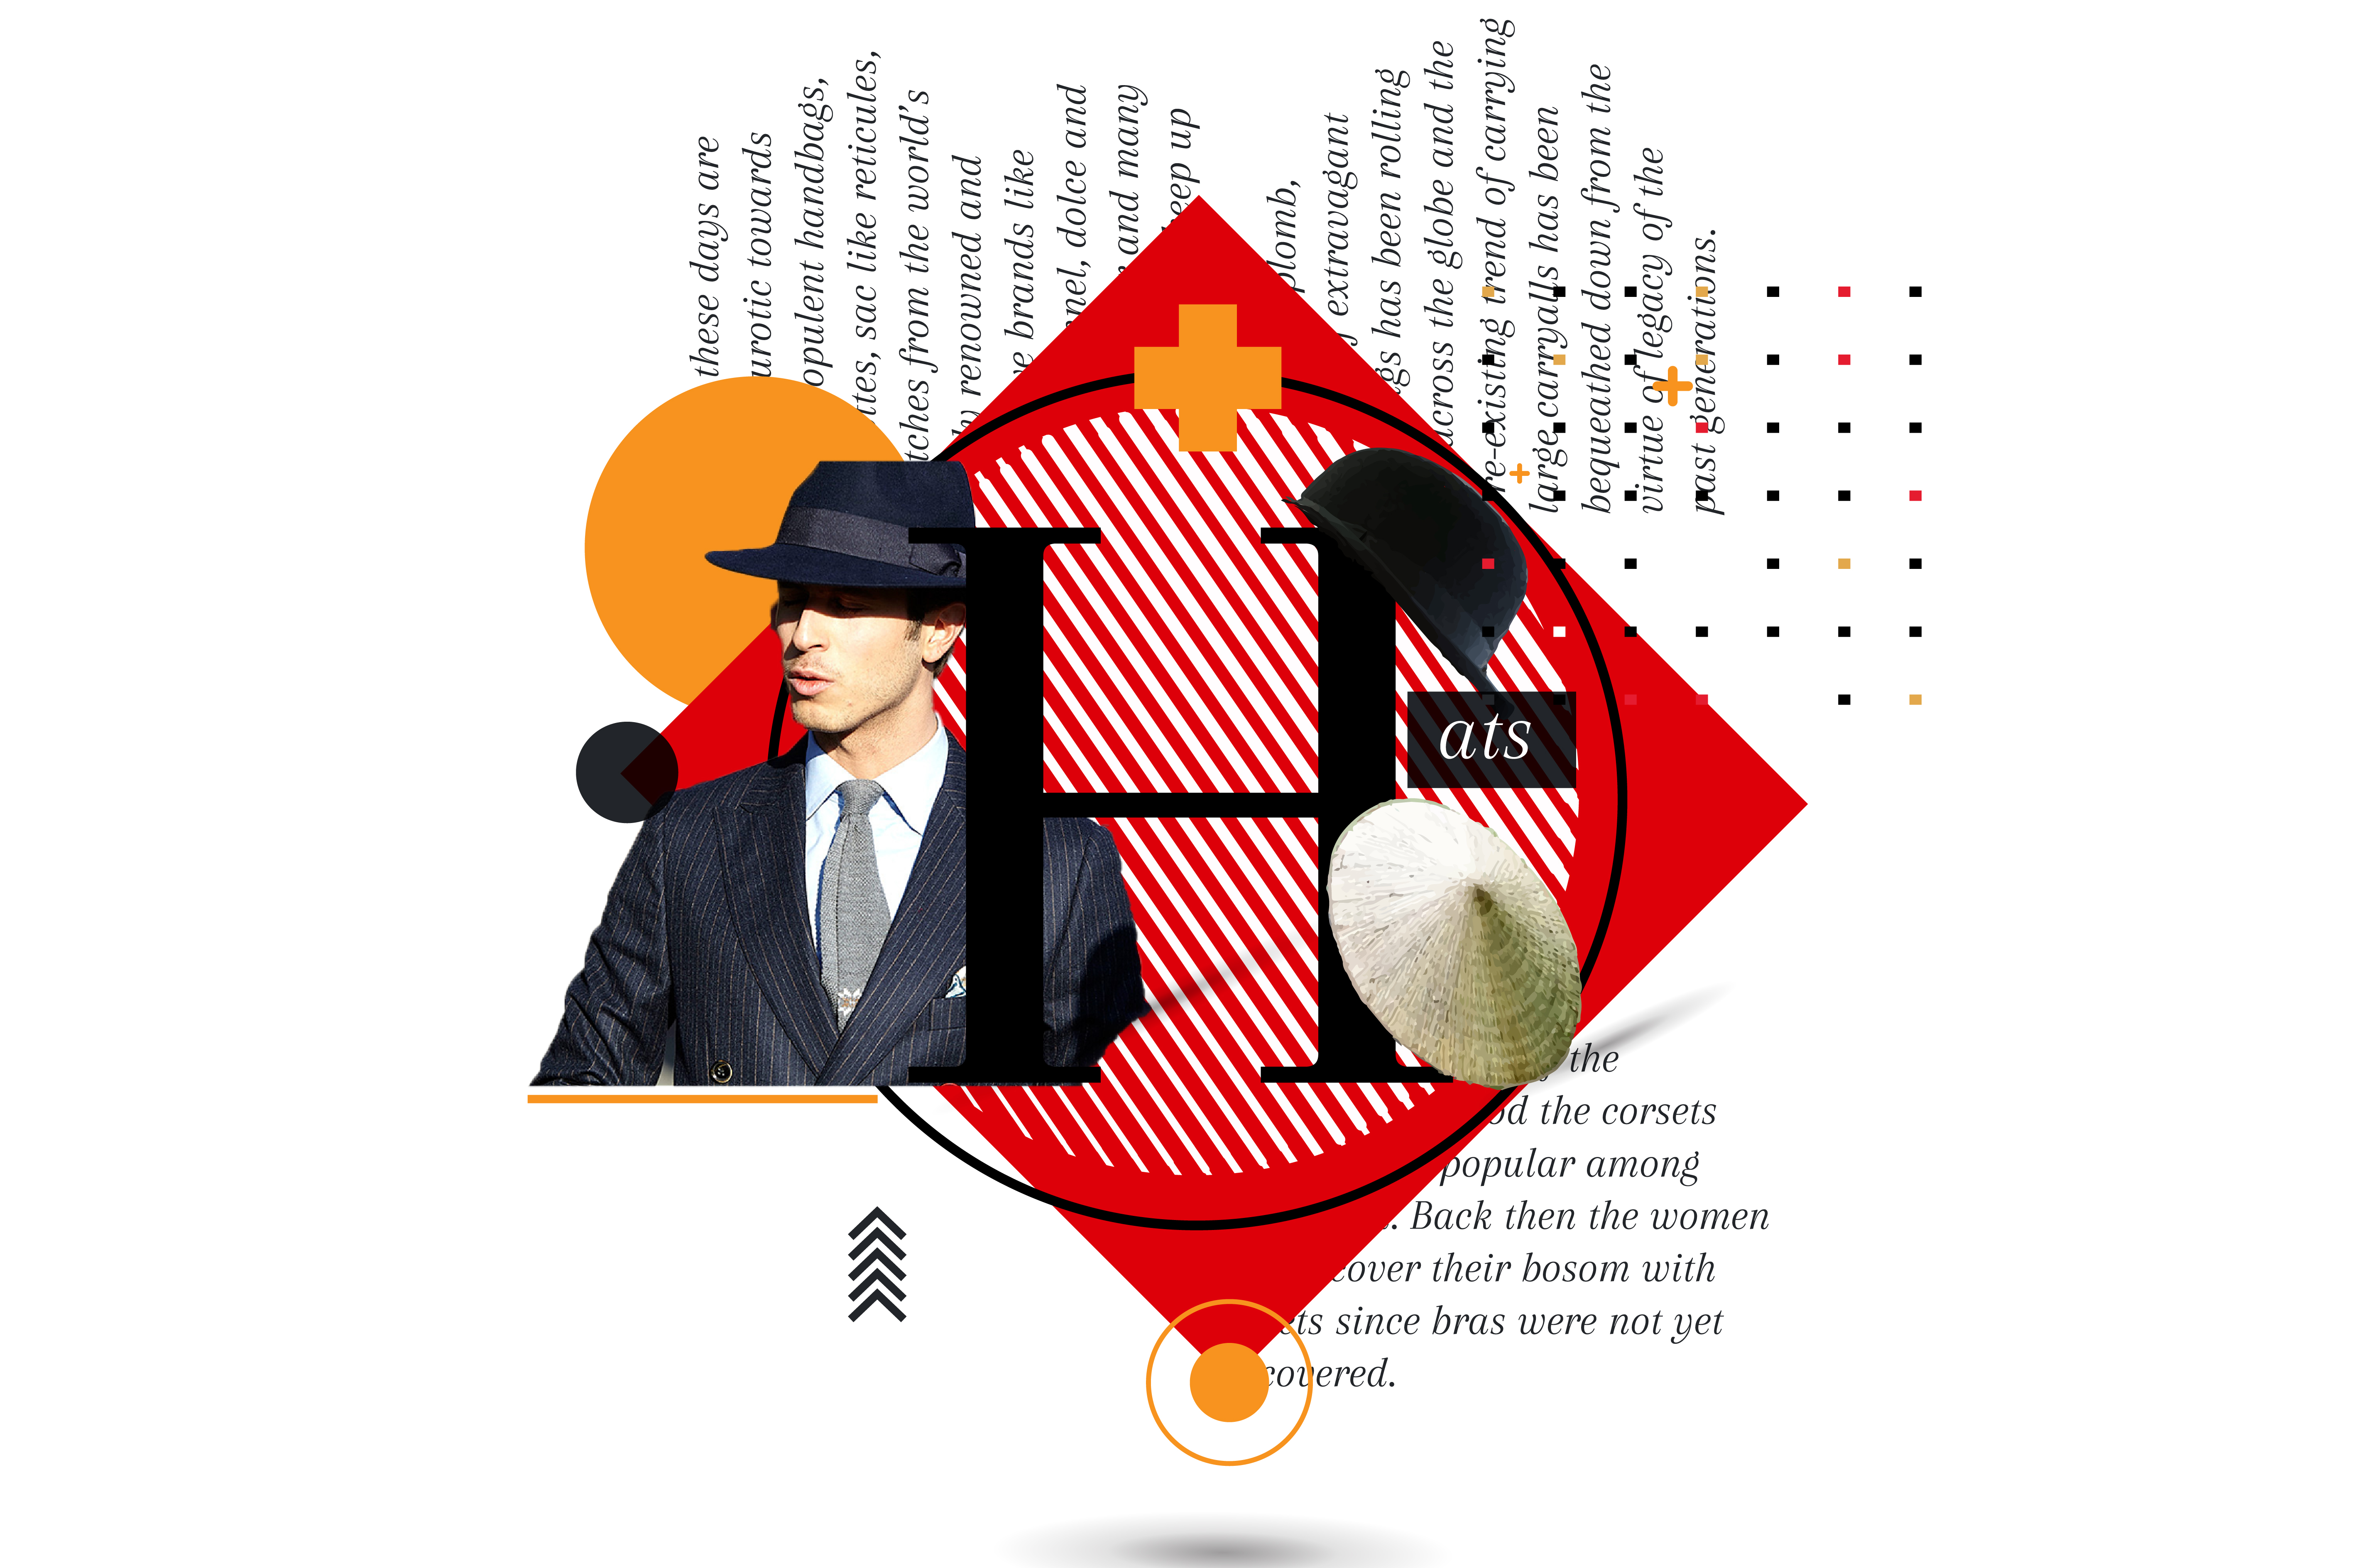 Hat- a symbol of status and authority